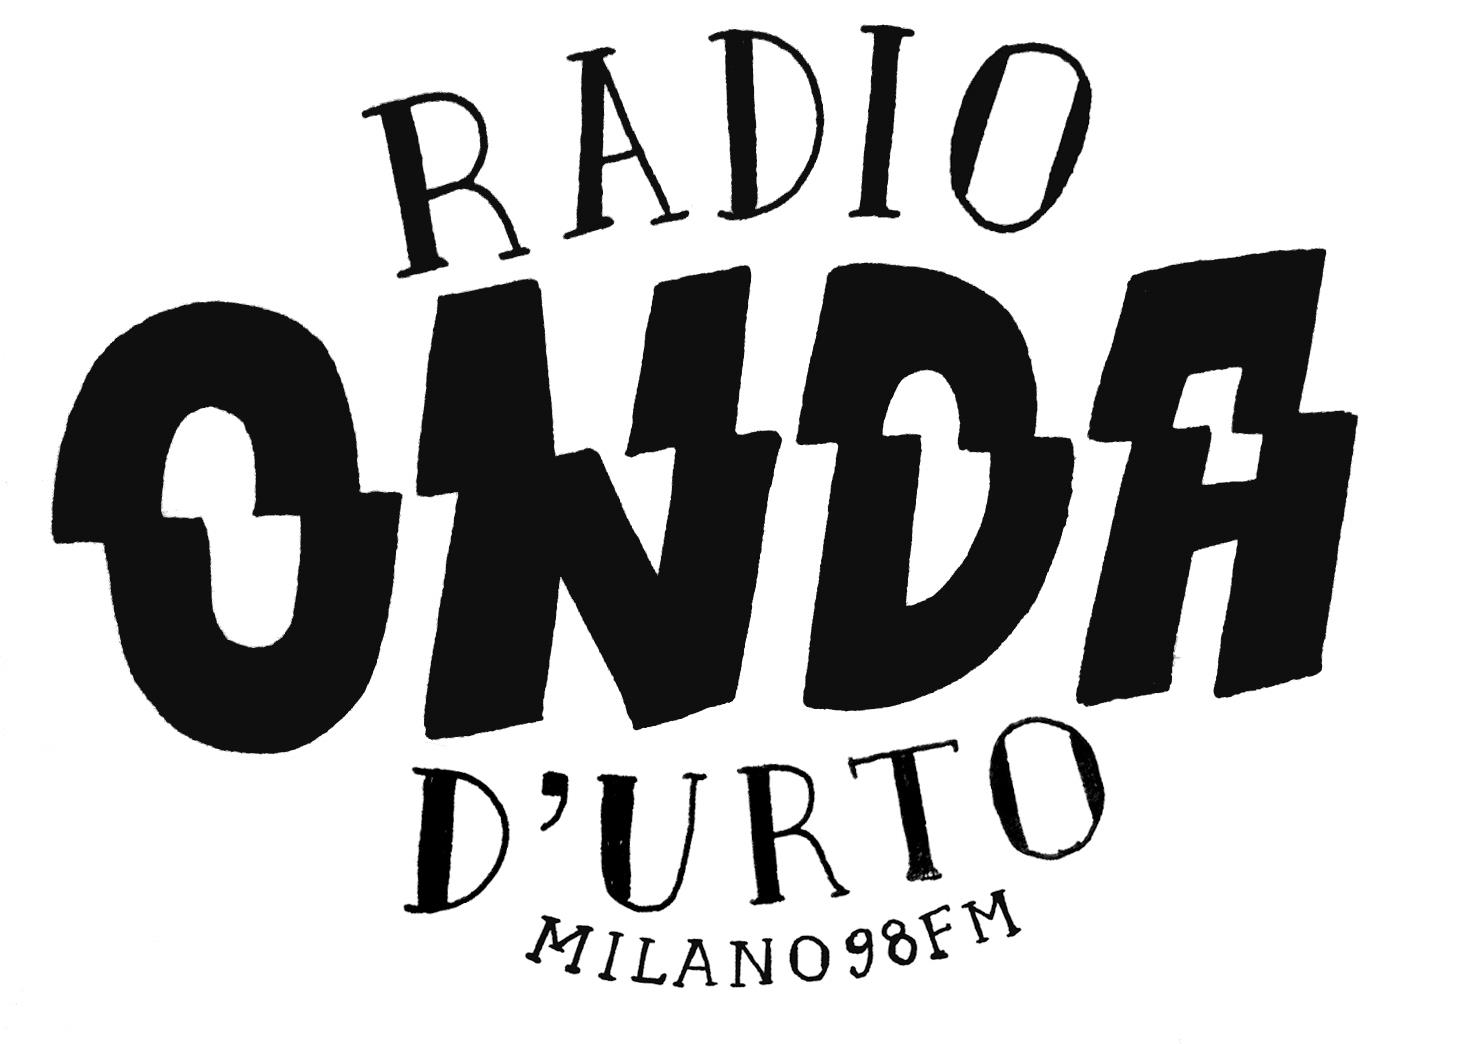 Radio Onda d'urto in streaming